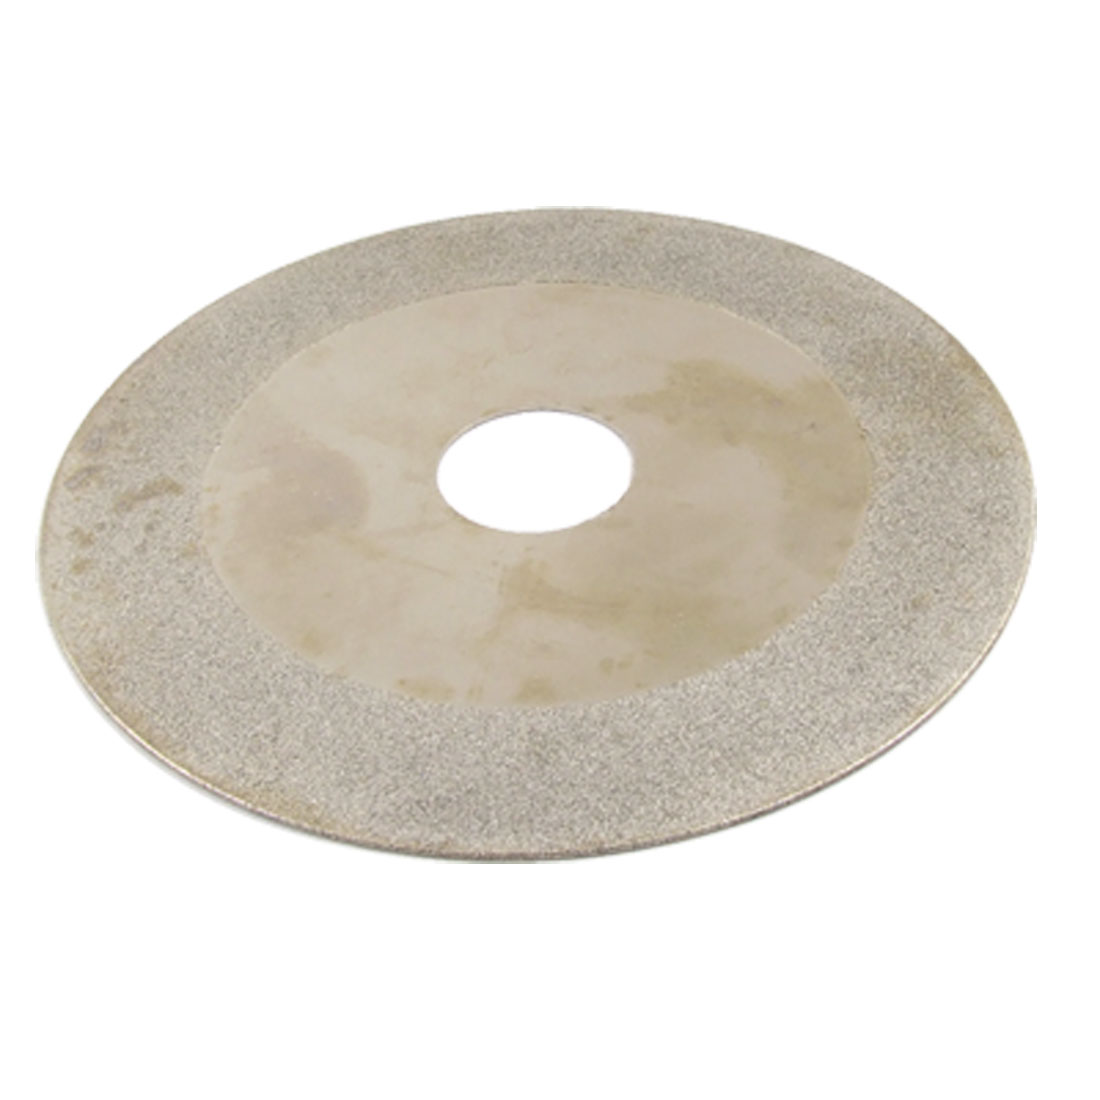 100mm x 20mm 100 Grit Diamond Coated Rotary Cutting Cut-off Wheel Disc Saw Cutter